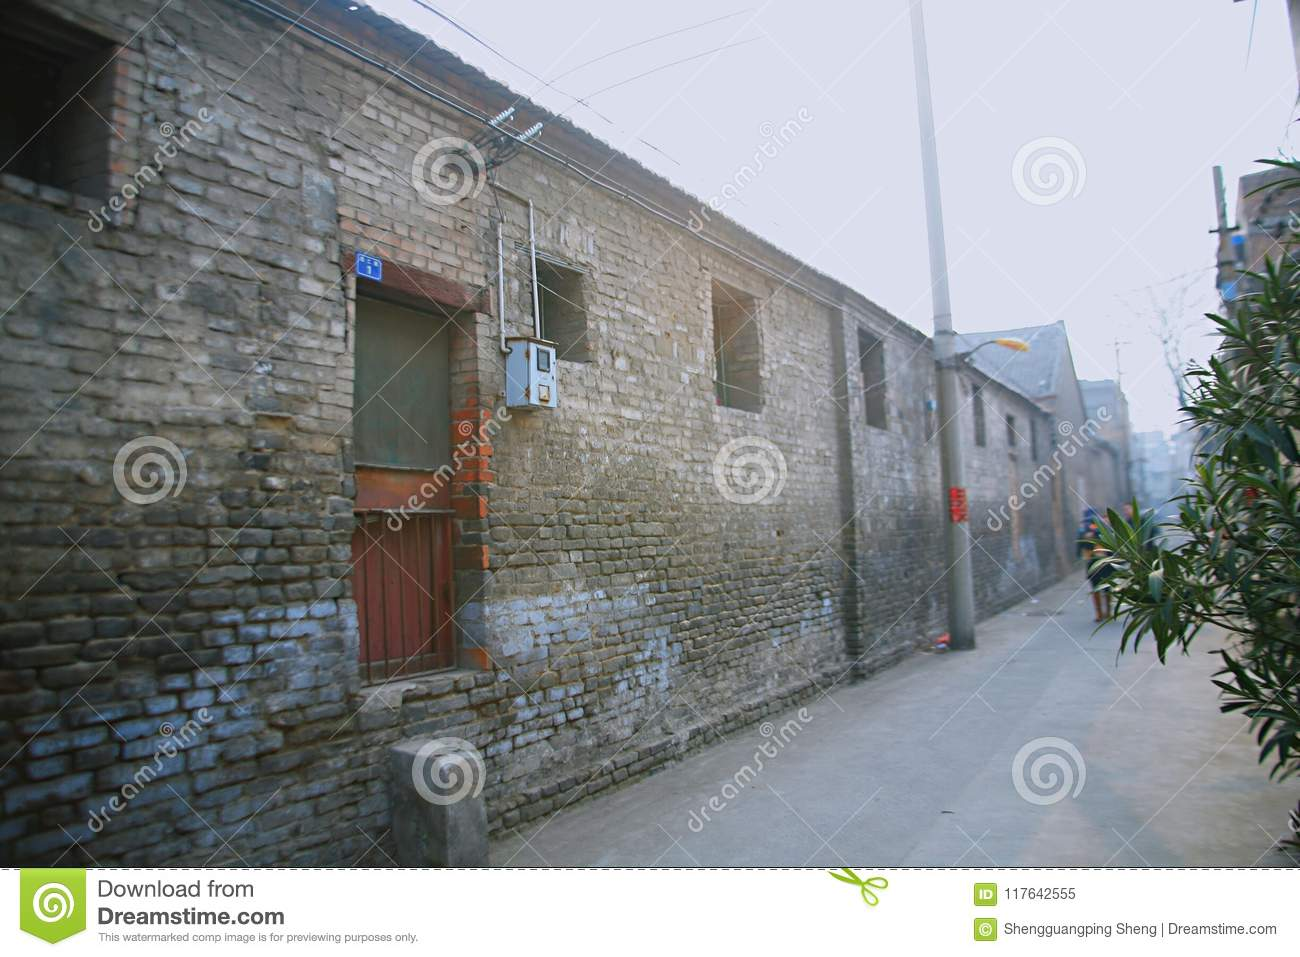 Those things in the old city of Luoyang